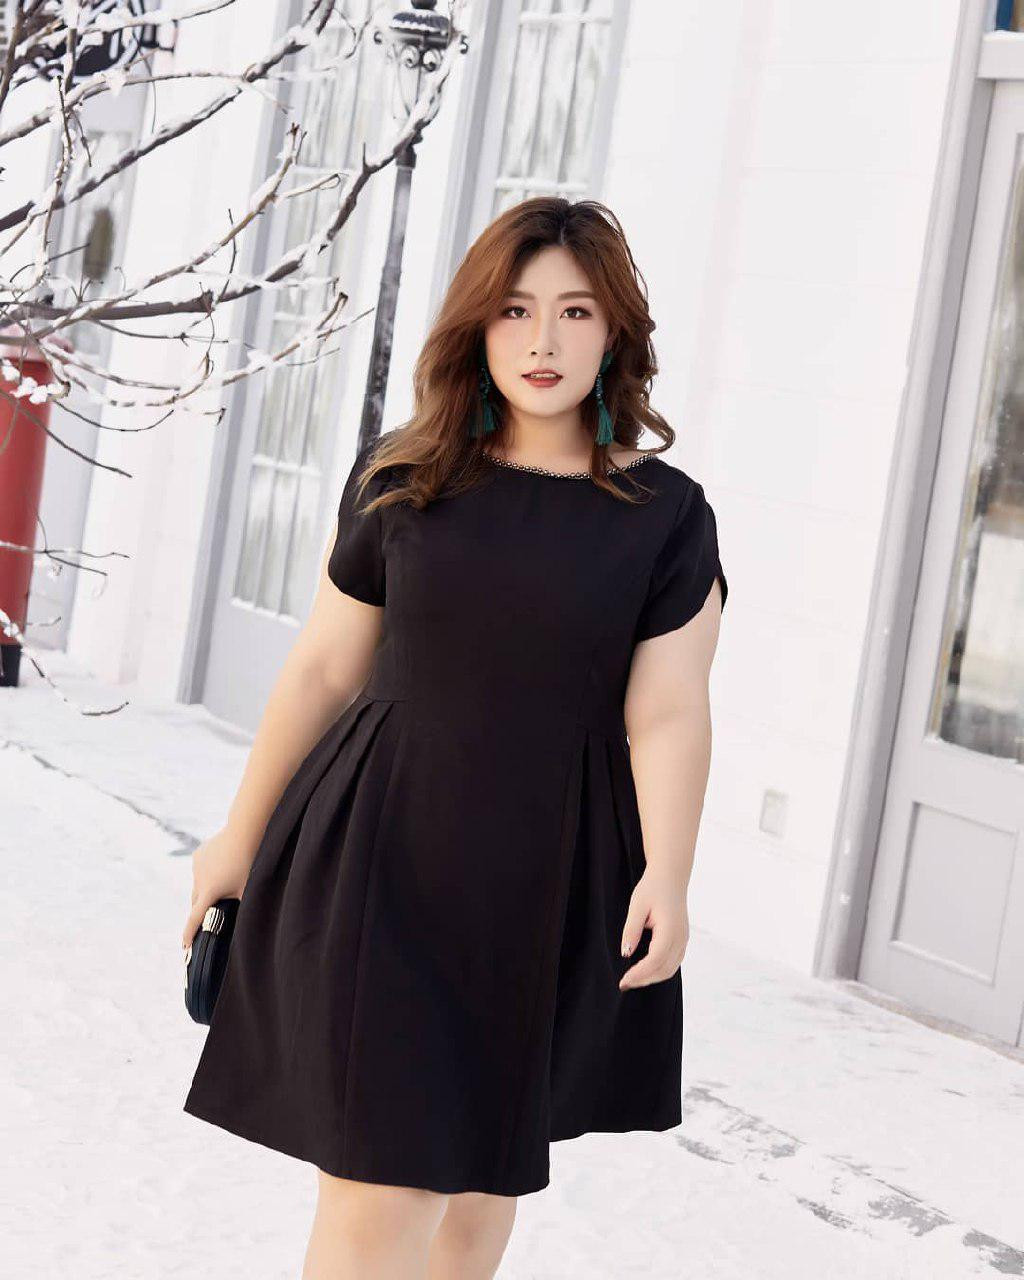 Plus Size Dresses For College Graduation - Ficts